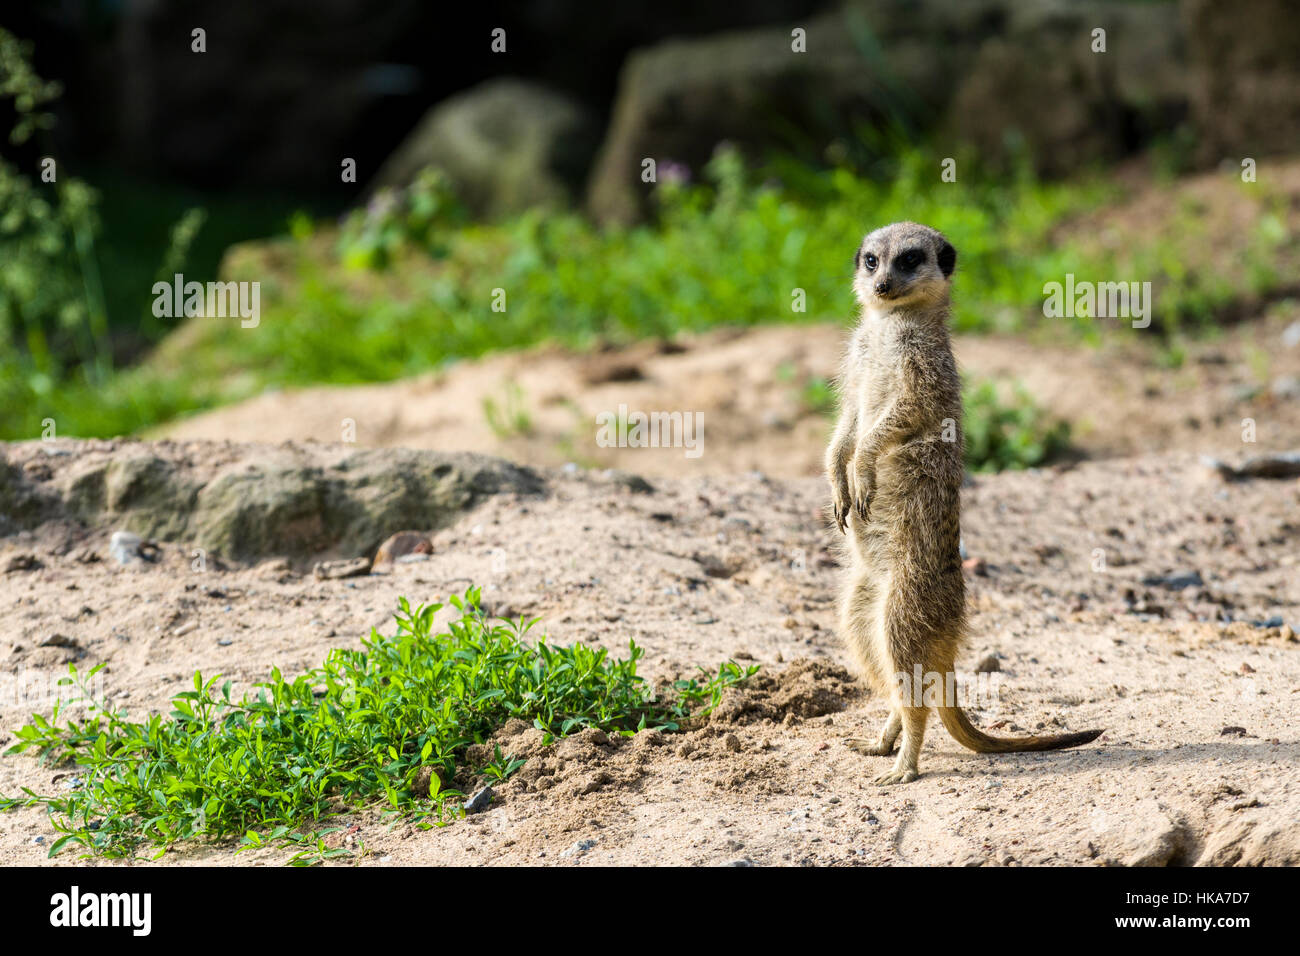 A Meerkat (Suricata suricatta) is standing on the ground, watching out - Stock Image